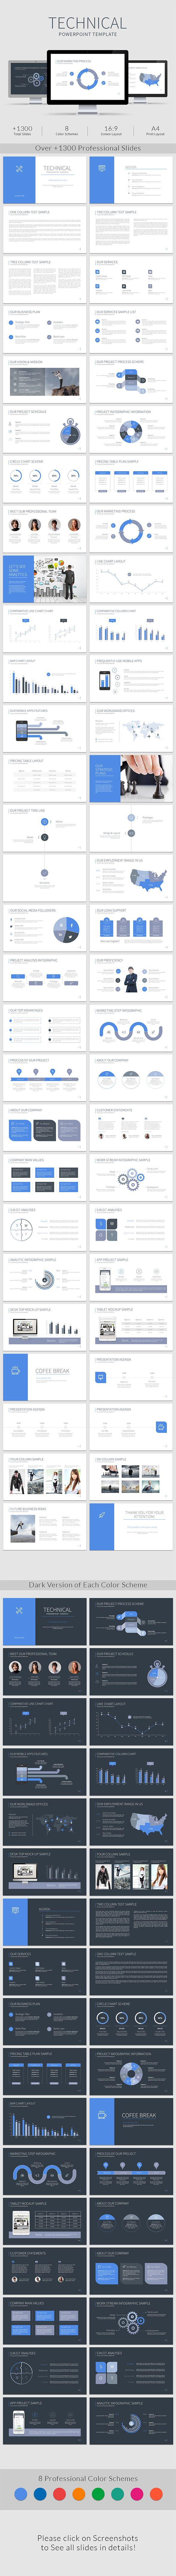 Technical PowerPoint Template #design #slides Download: http://graphicriver.net/item/technical-powerpoint-template/14113221?ref=ksioks